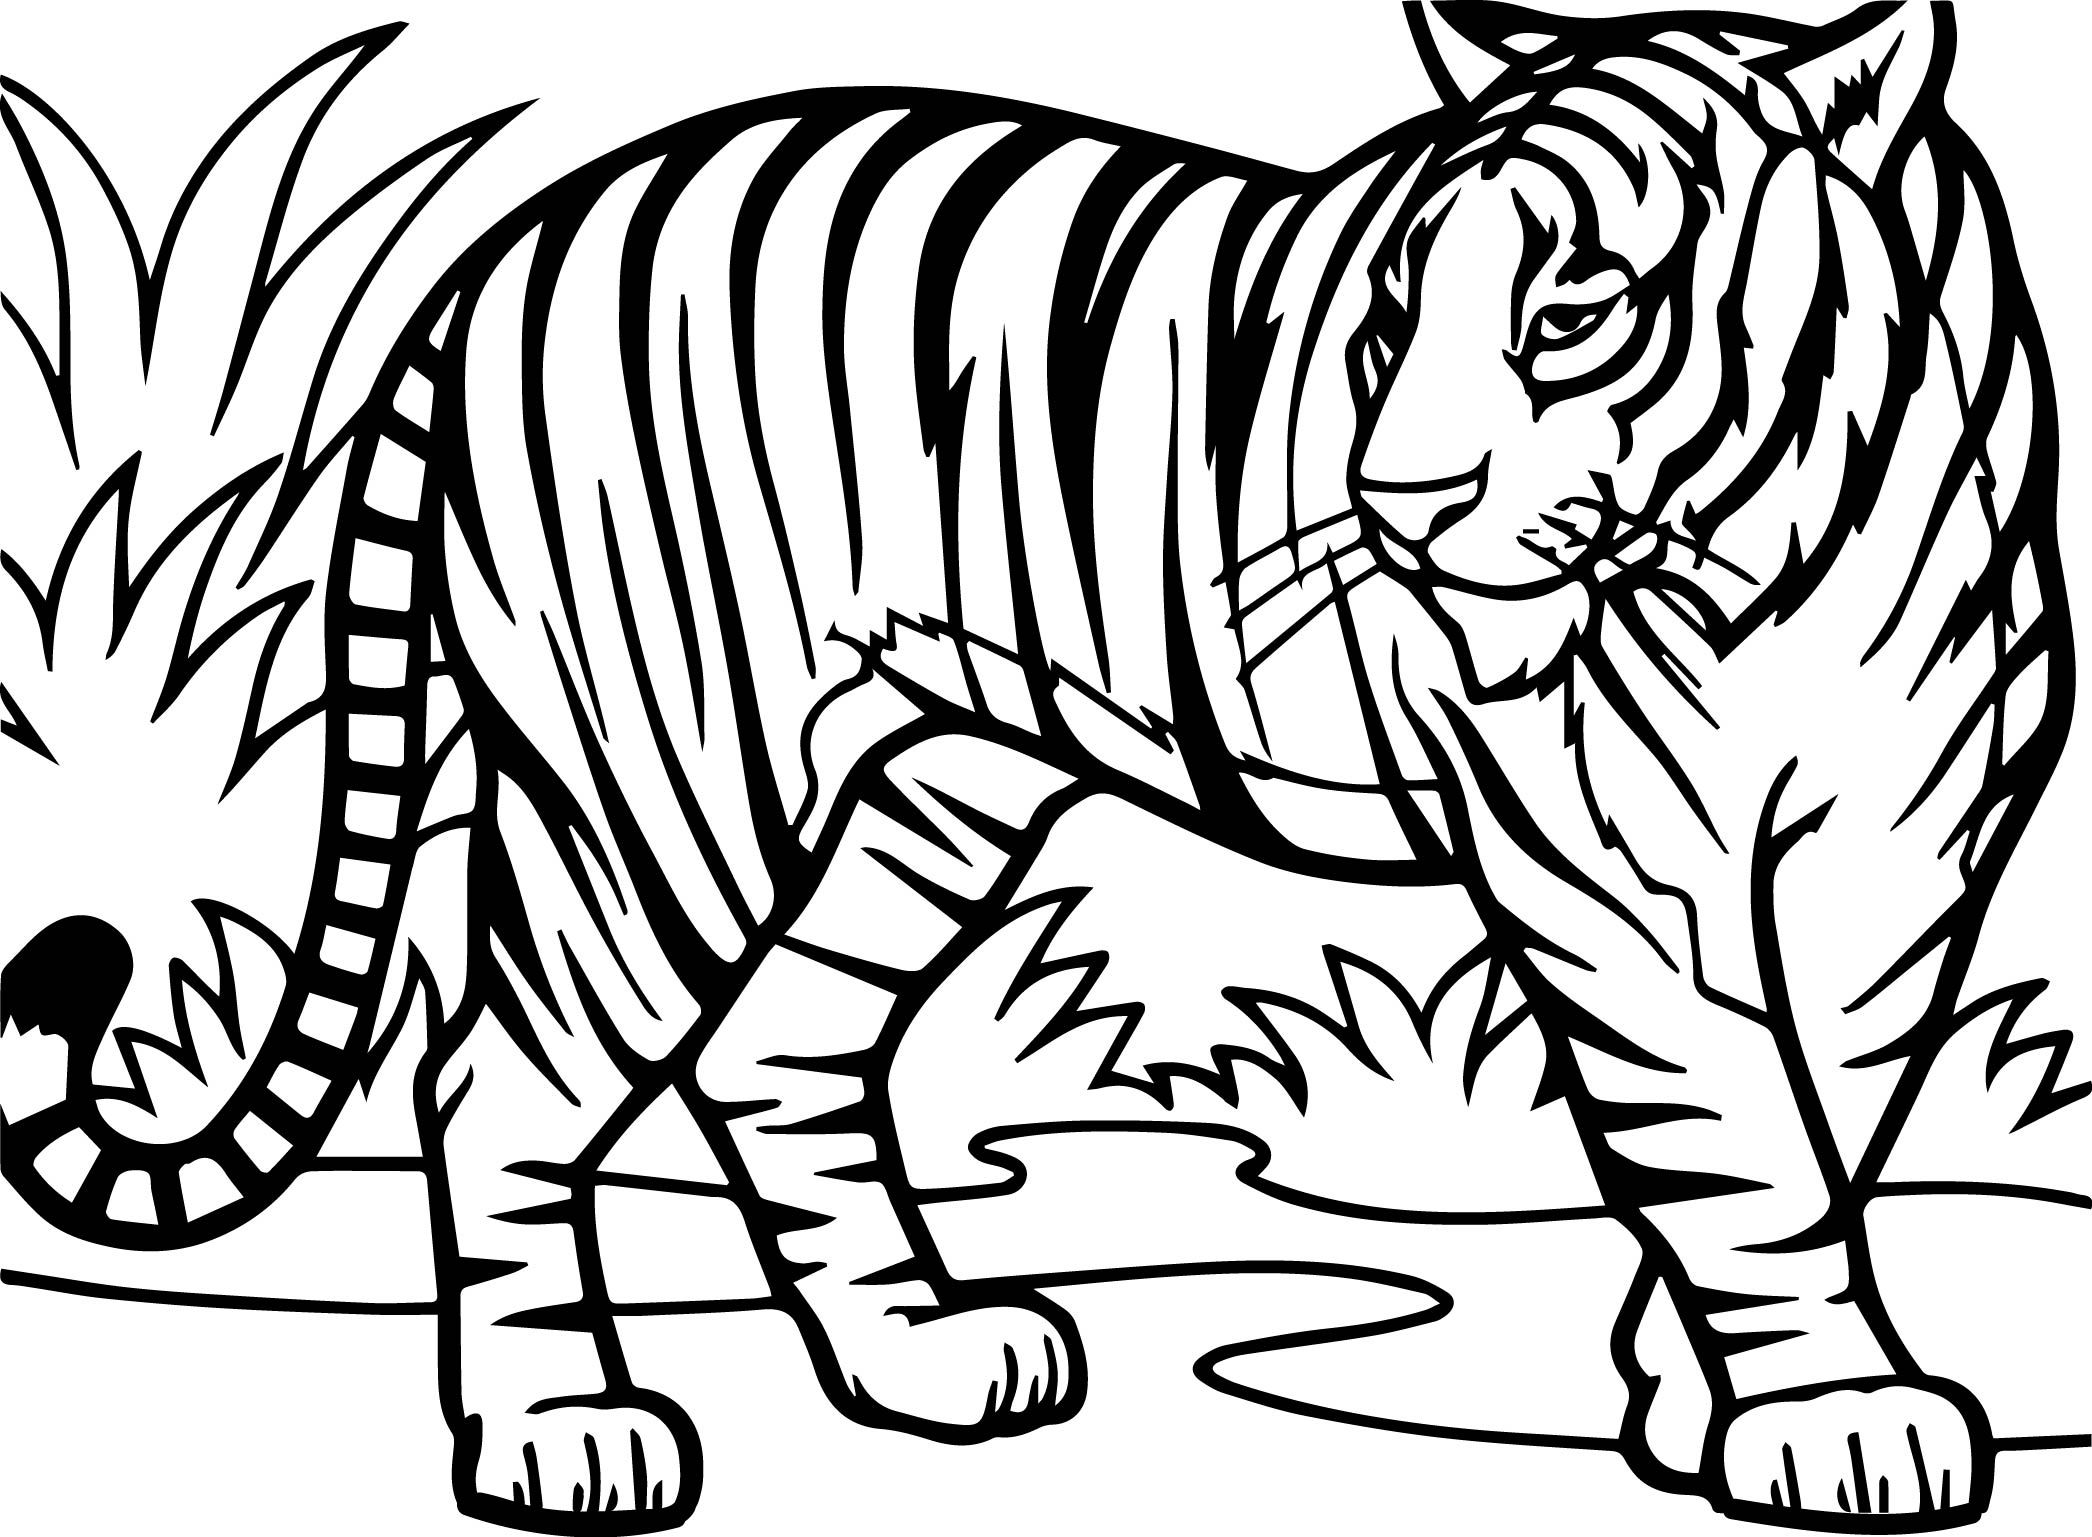 Tiger Coloring Pages Ideas With Awesome Pattern Free Coloring Sheets Tiger Drawing For Kids Tiger Drawing Animal Coloring Pages